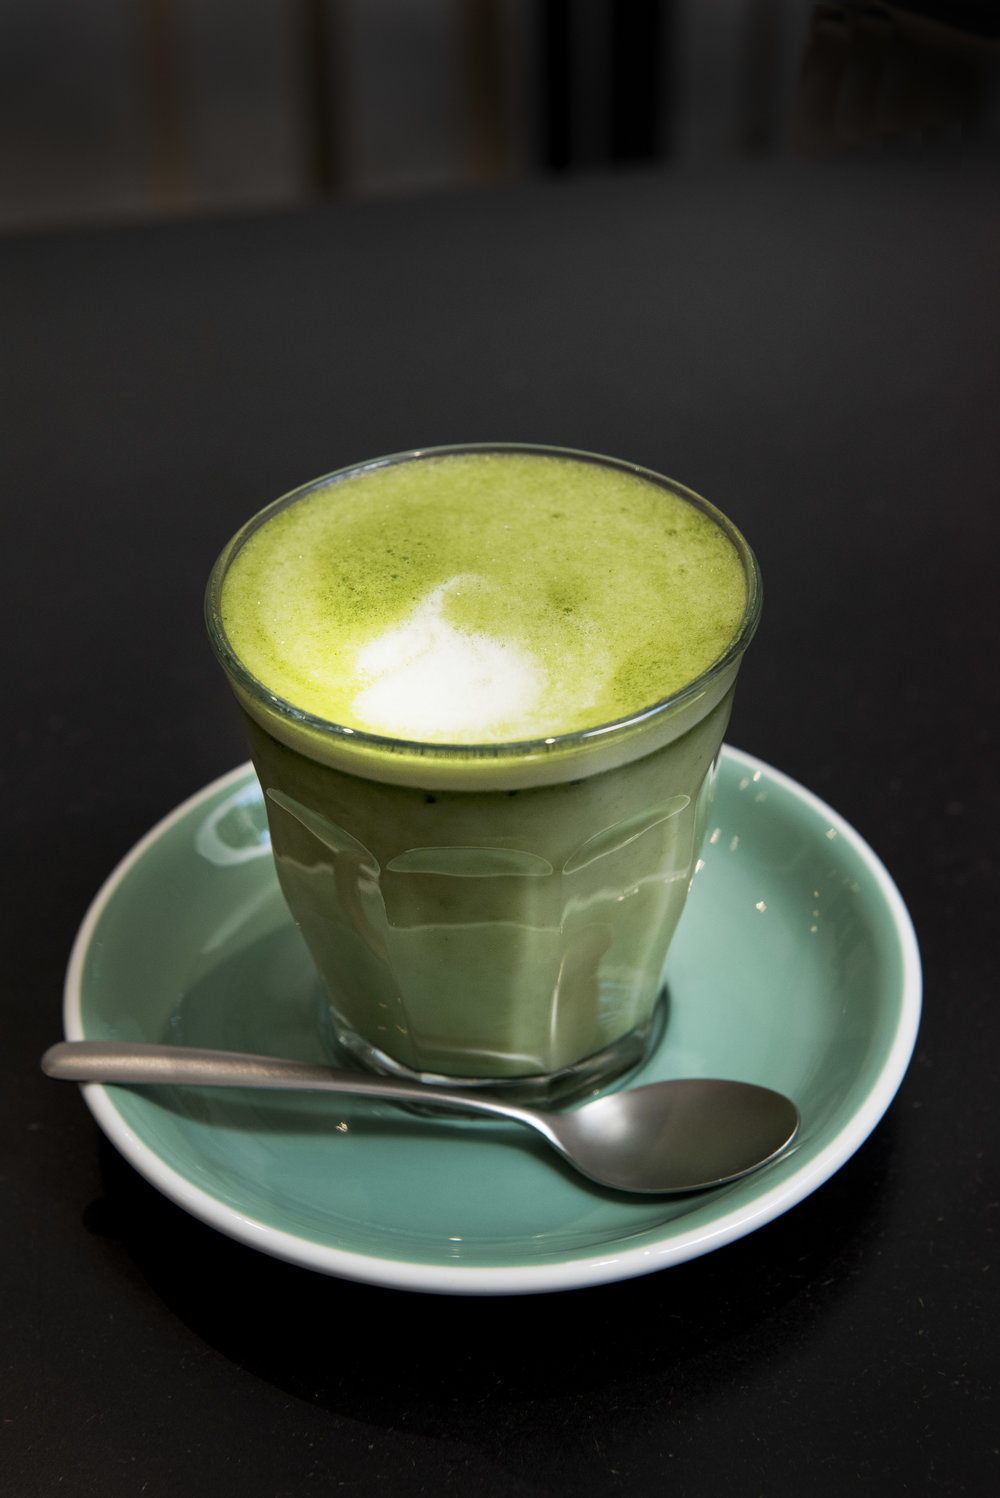 Matcha Latte at Bohl, Barcelona